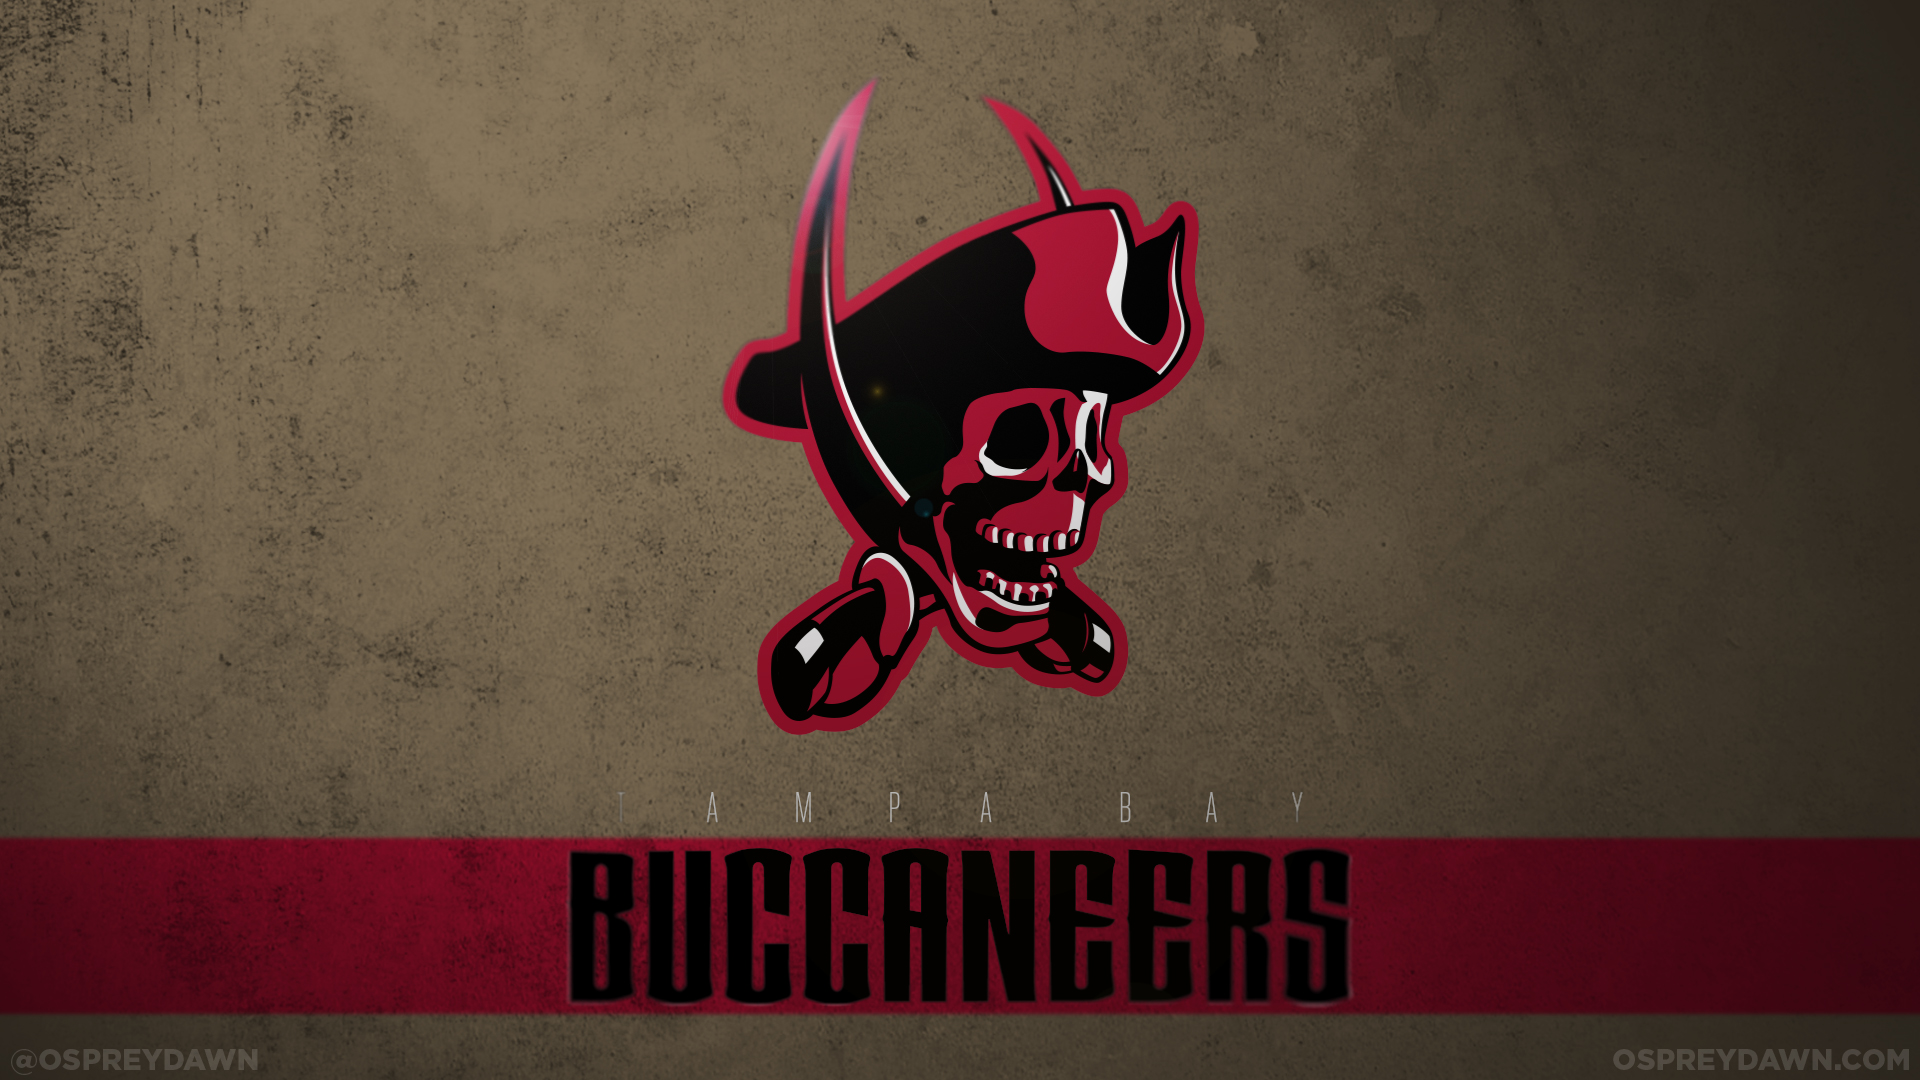 TAMPA BAY BUCCANEERS nfl football fu wallpaper